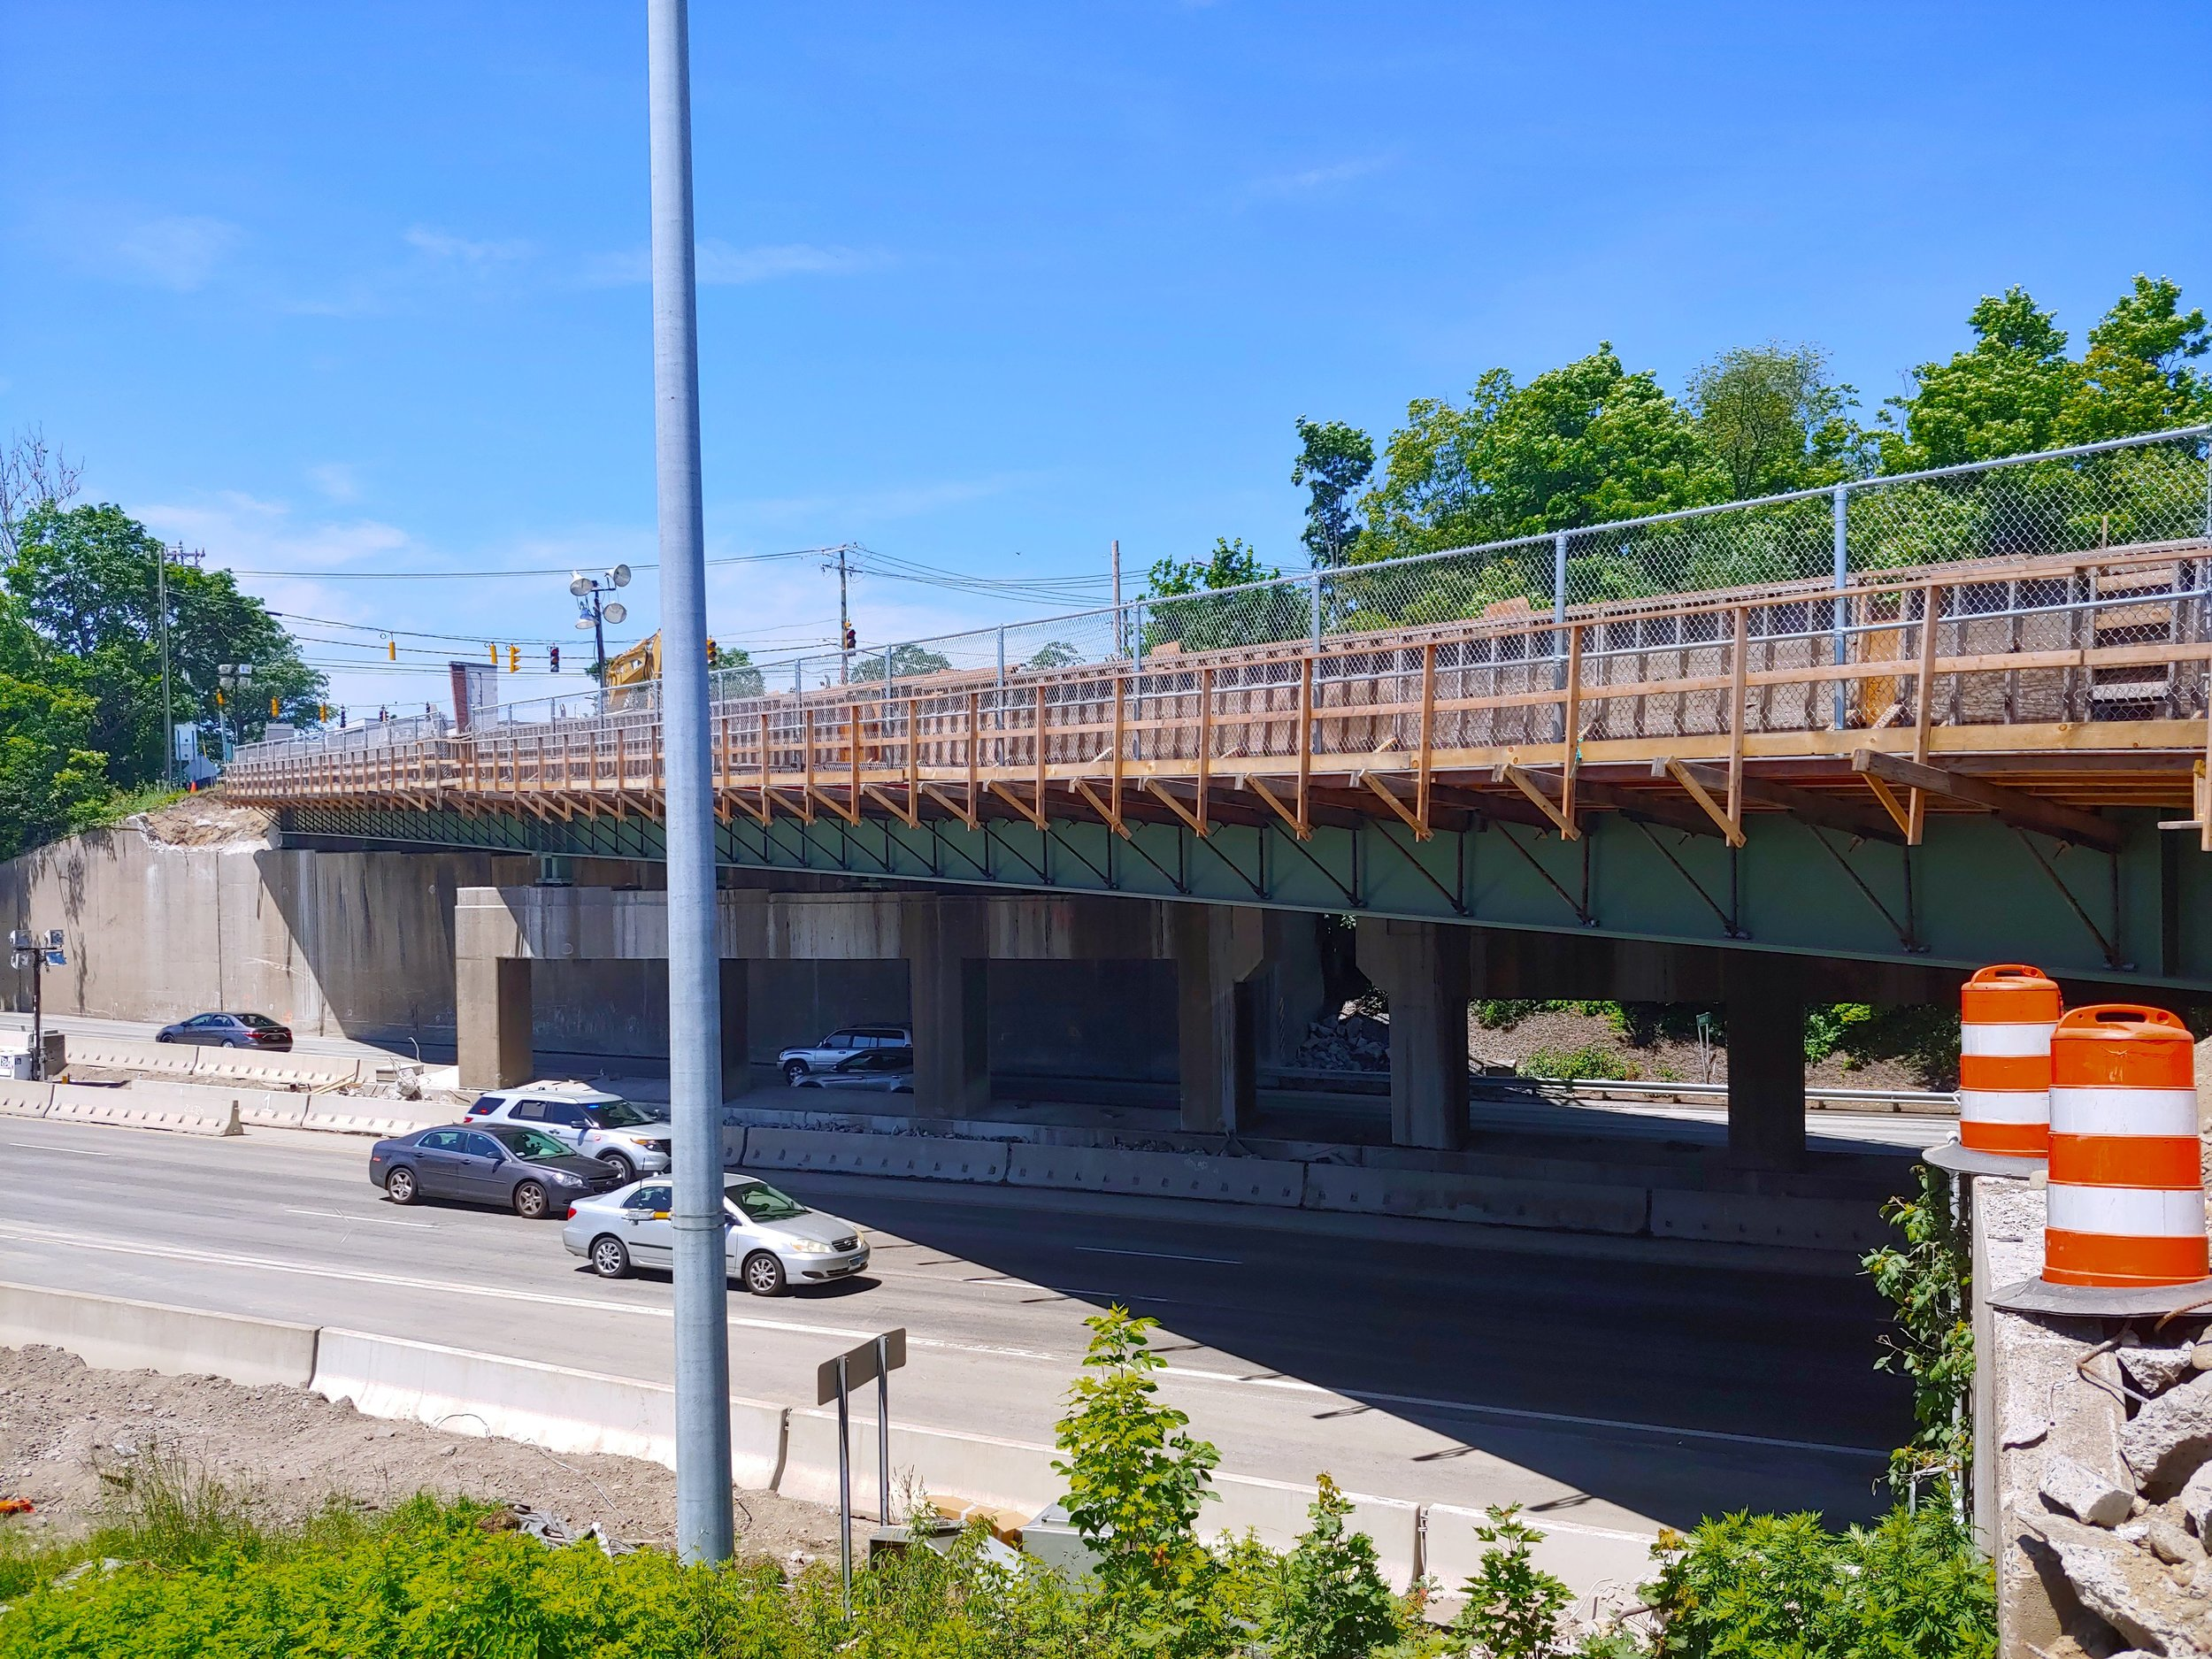 Both new bridge spans in place.  Taken on the morning of 6/9/19 by Kelsey Kahn